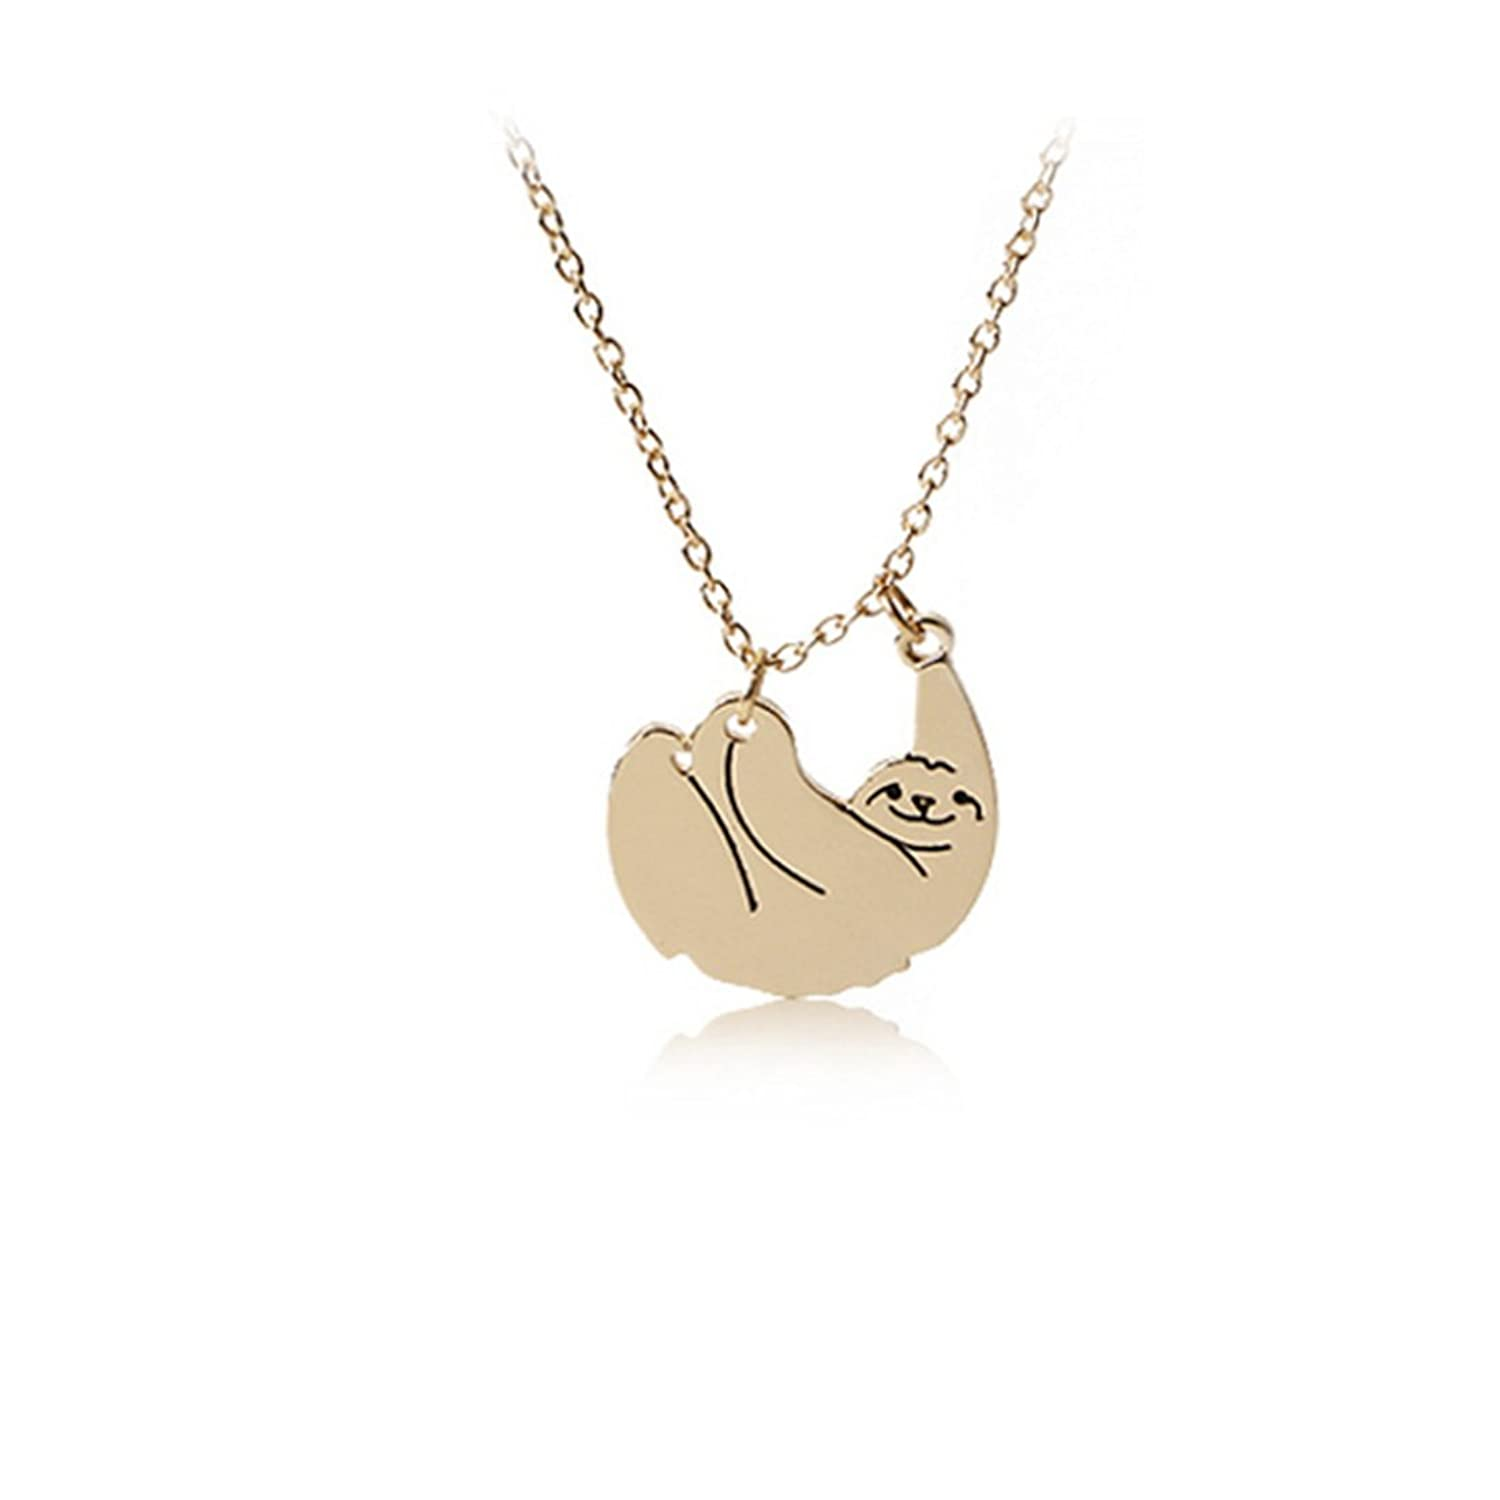 com necklace sloth pendant silver sterling hanging